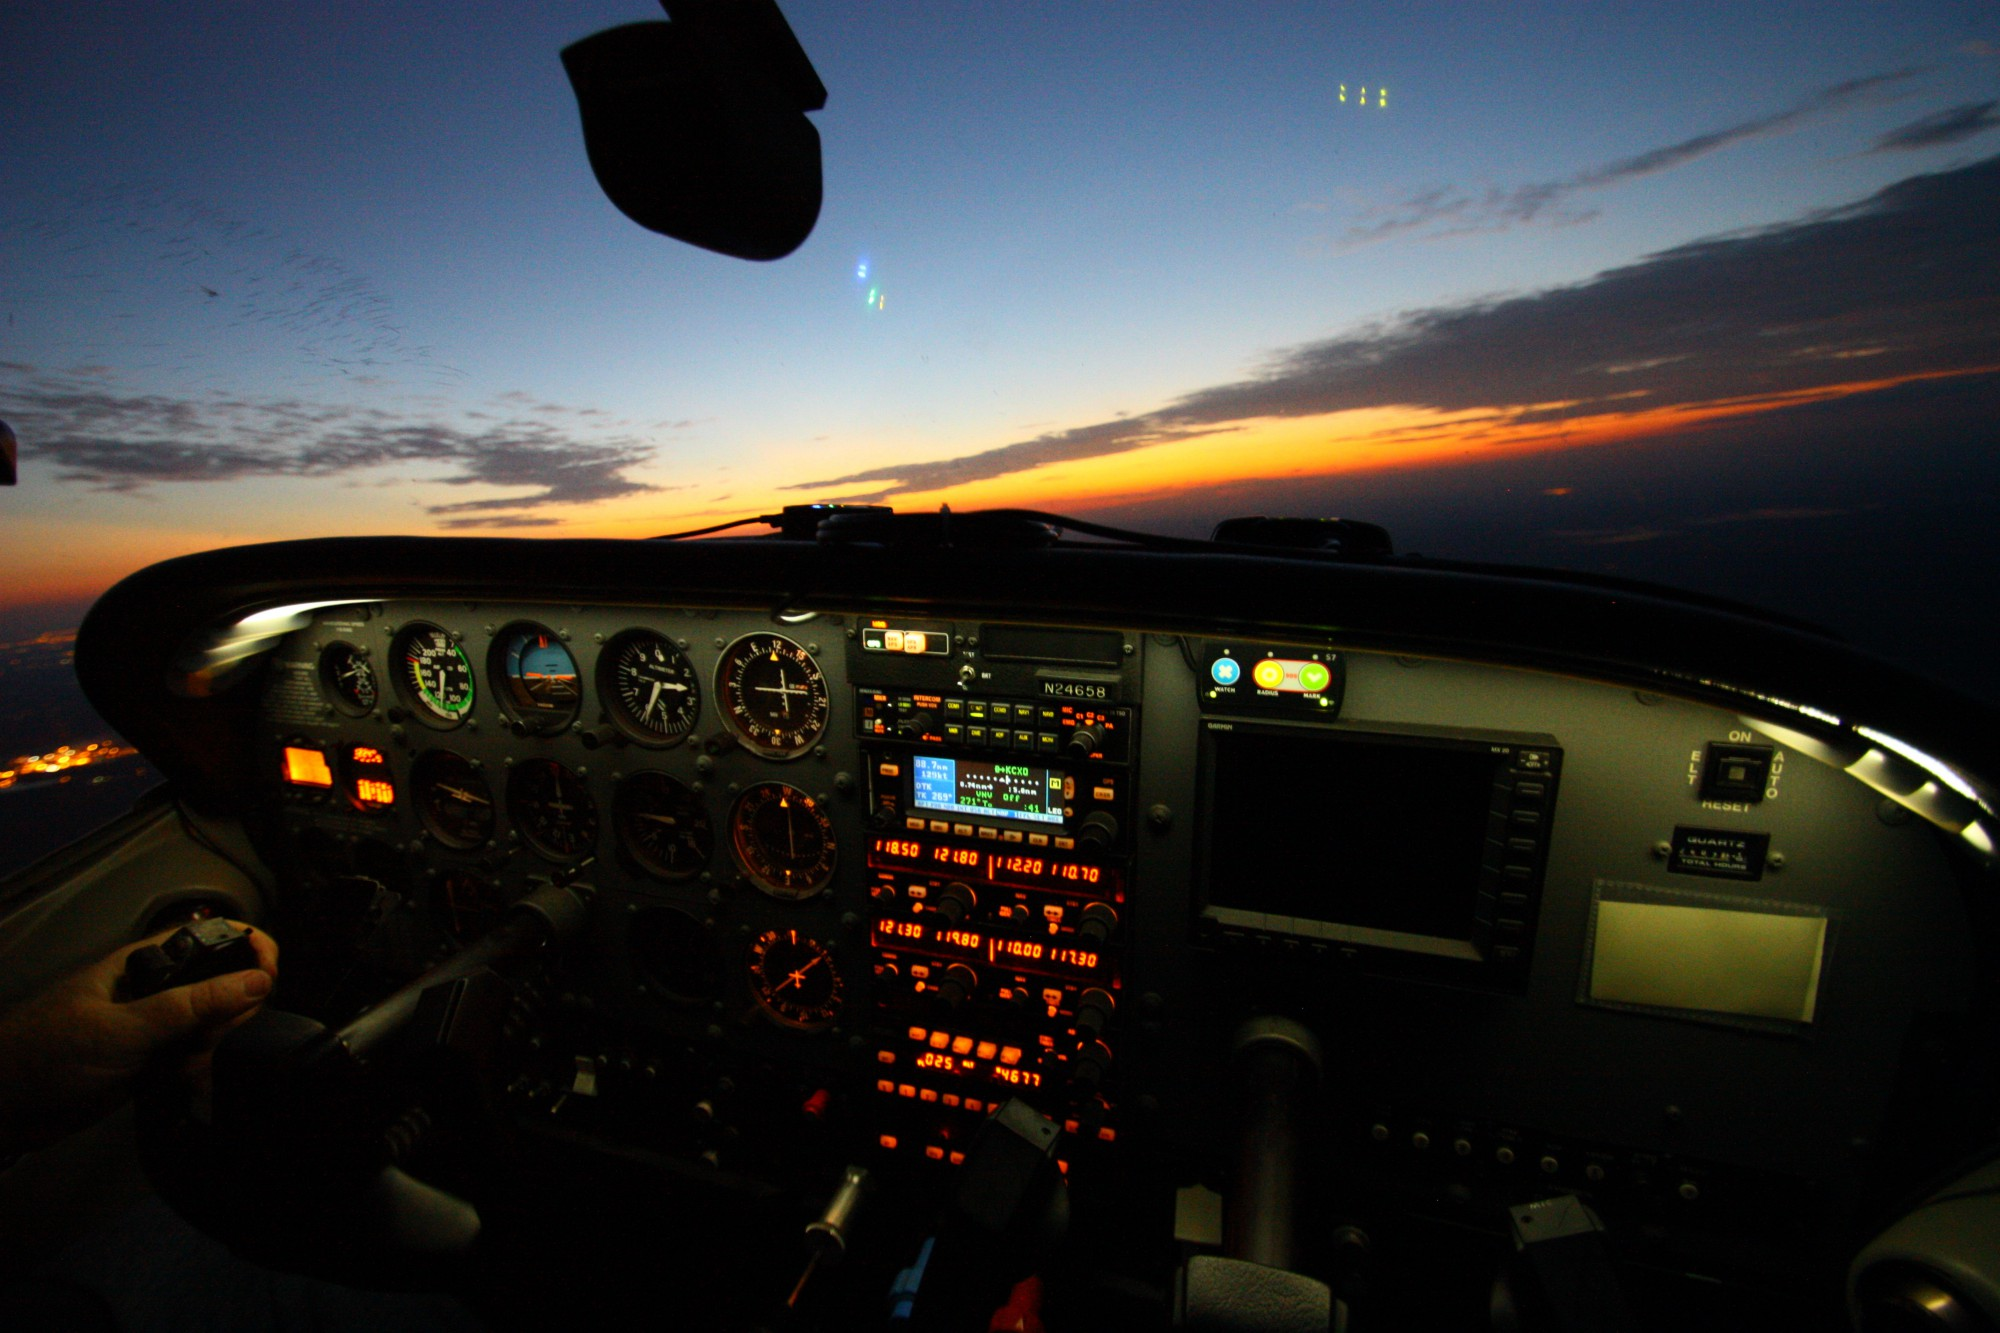 7 Things Every Pilot Should Consider When Flying Cross-Country